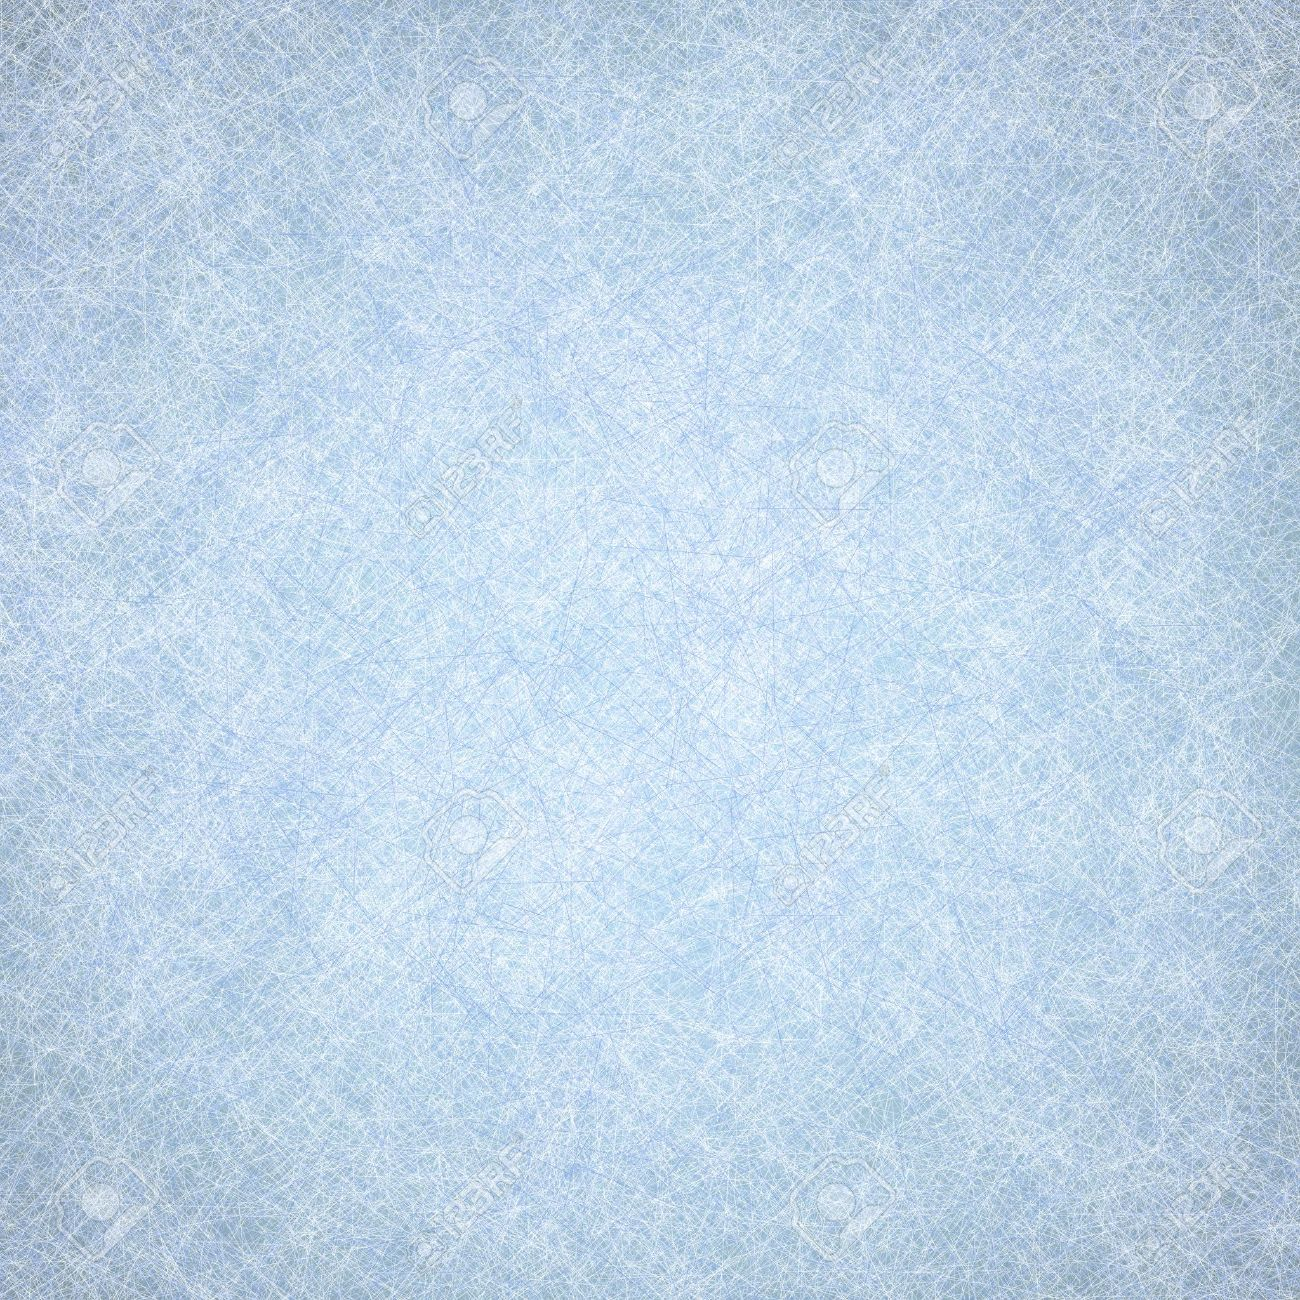 stock photo solid blue background texture light pastel sky blue color and faded old distressed texture design of faint white fine detailed line pattern - Light Sky Blue Color